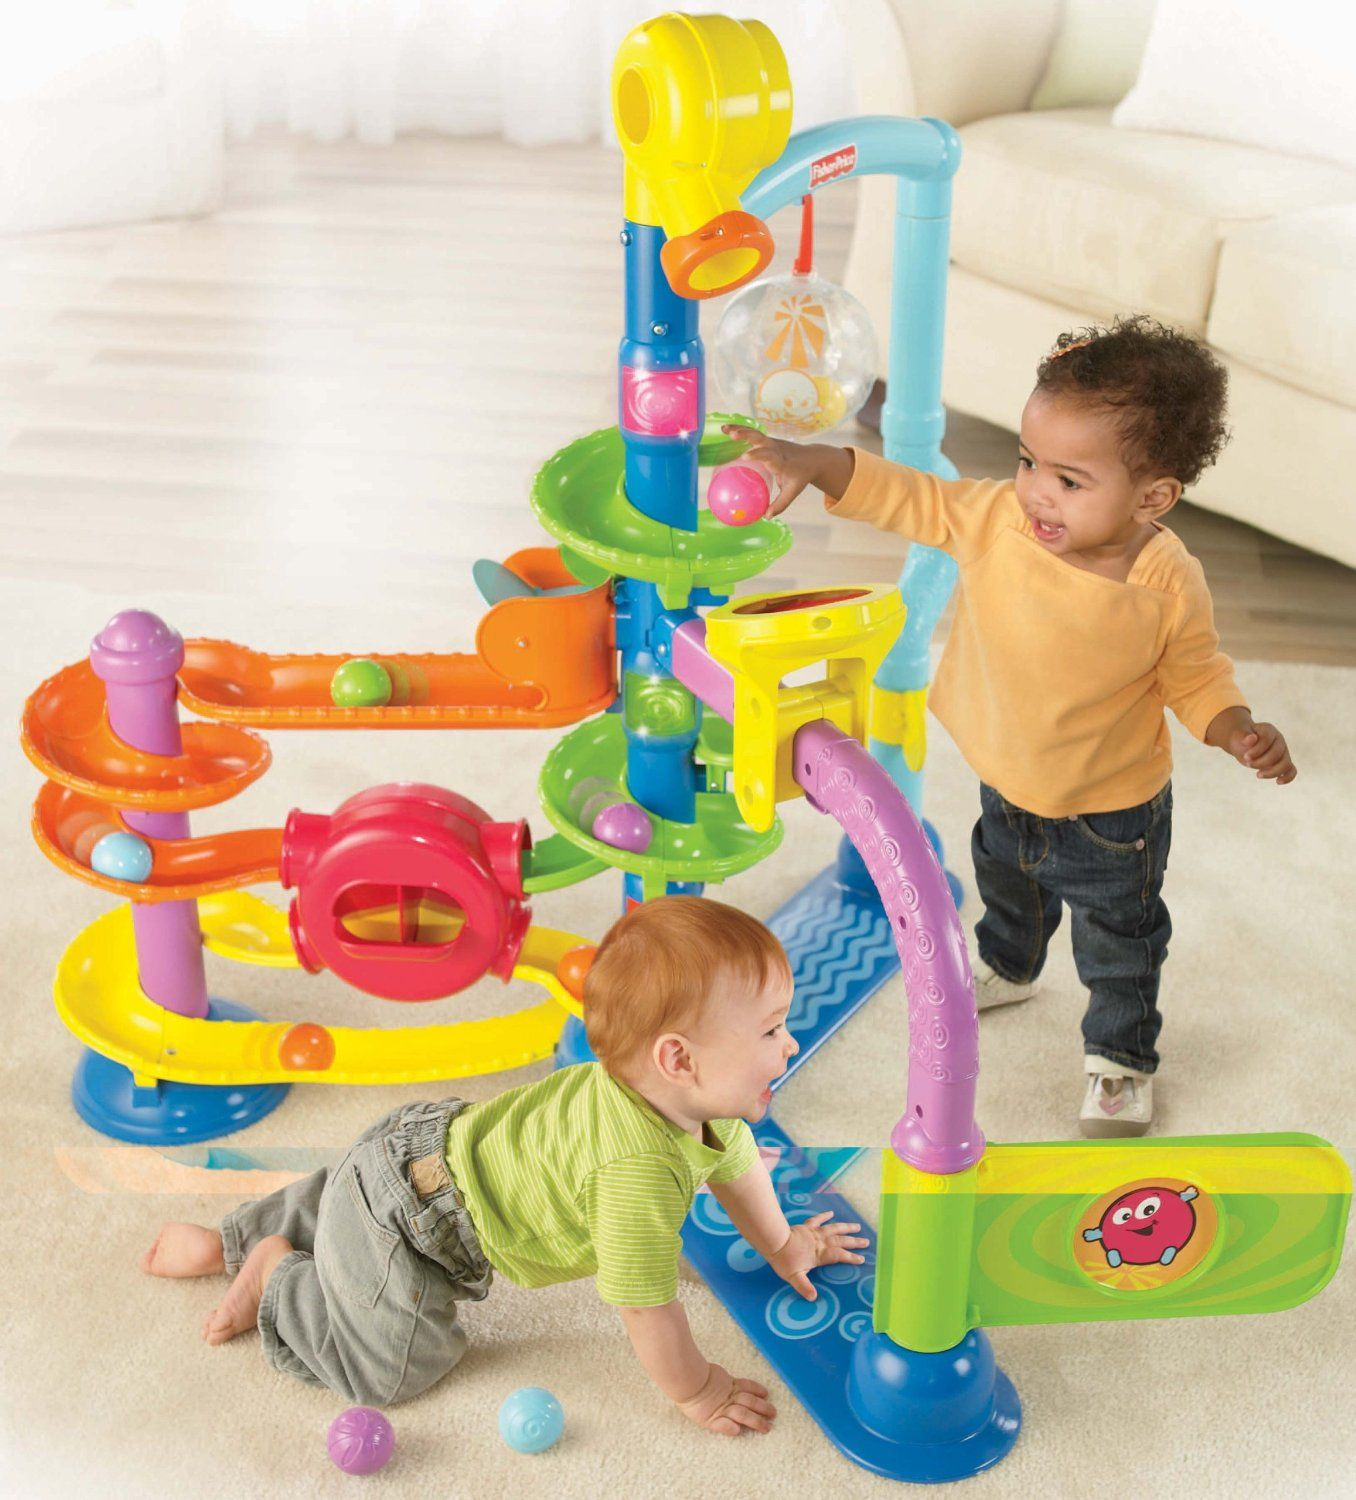 There is so much to do and see in the Fisher Price Ballapalooza